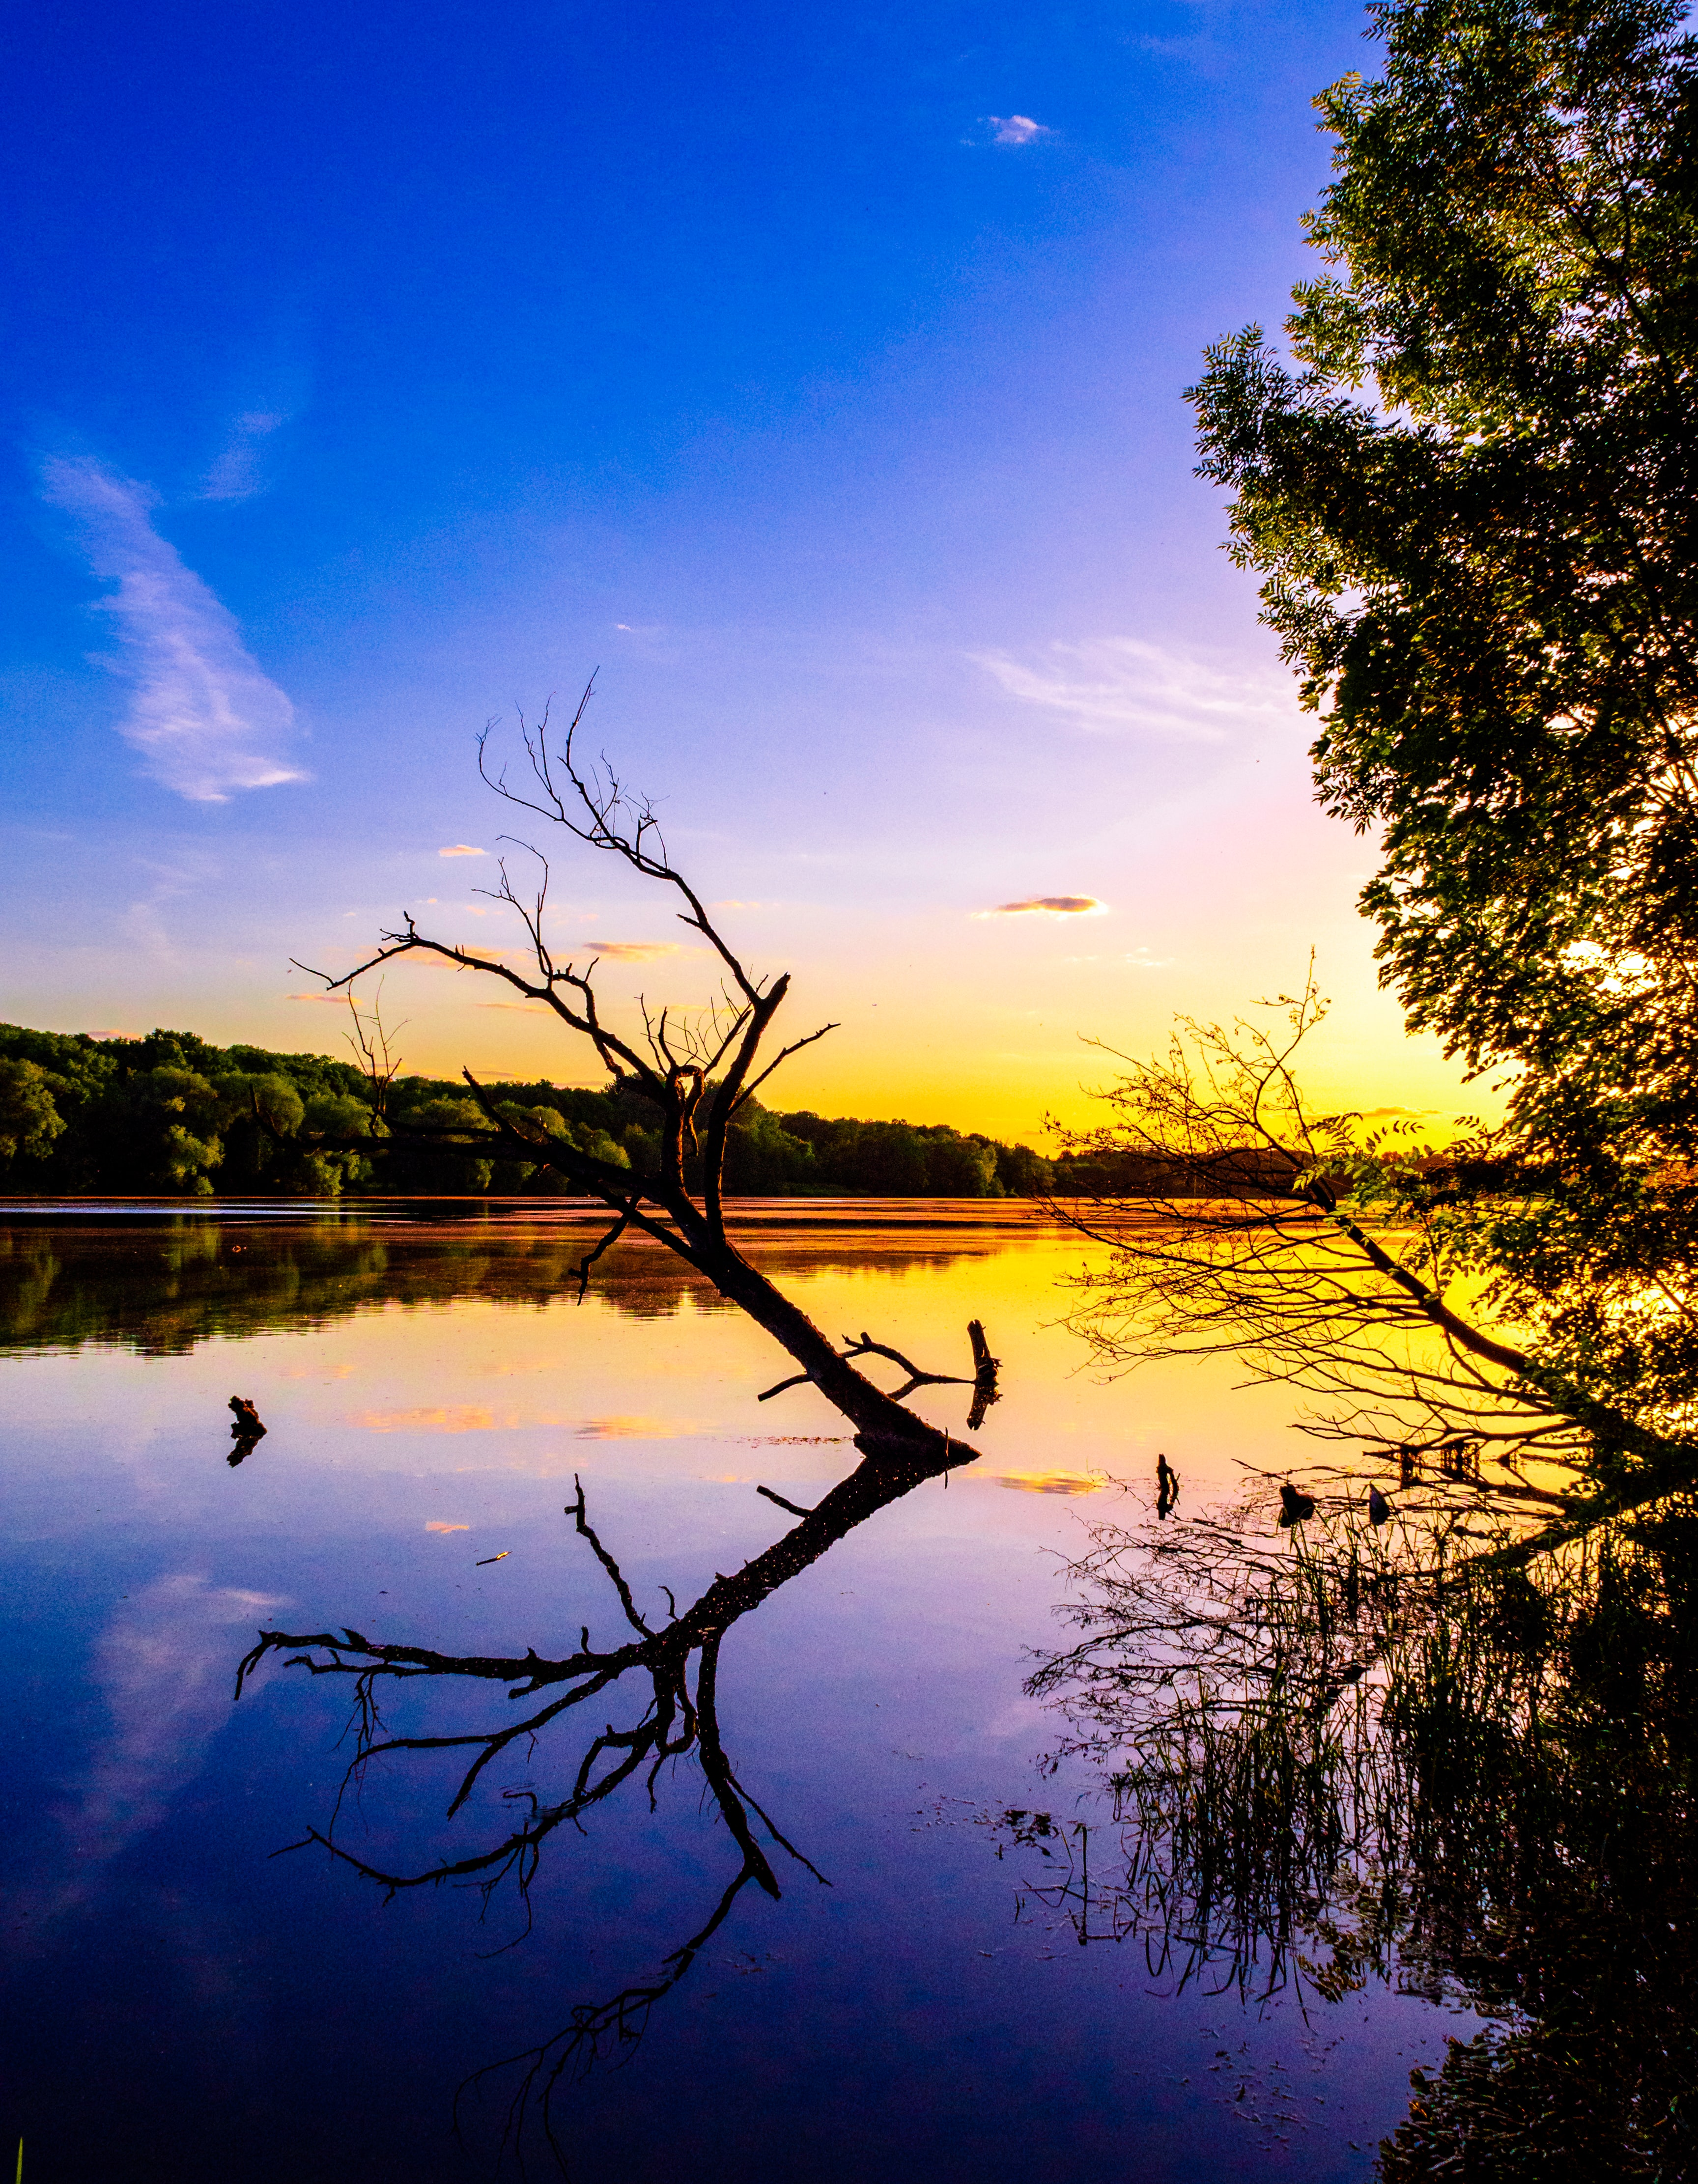 136856 download wallpaper Nature, Branch, Lake, Reflection, Dusk, Twilight screensavers and pictures for free